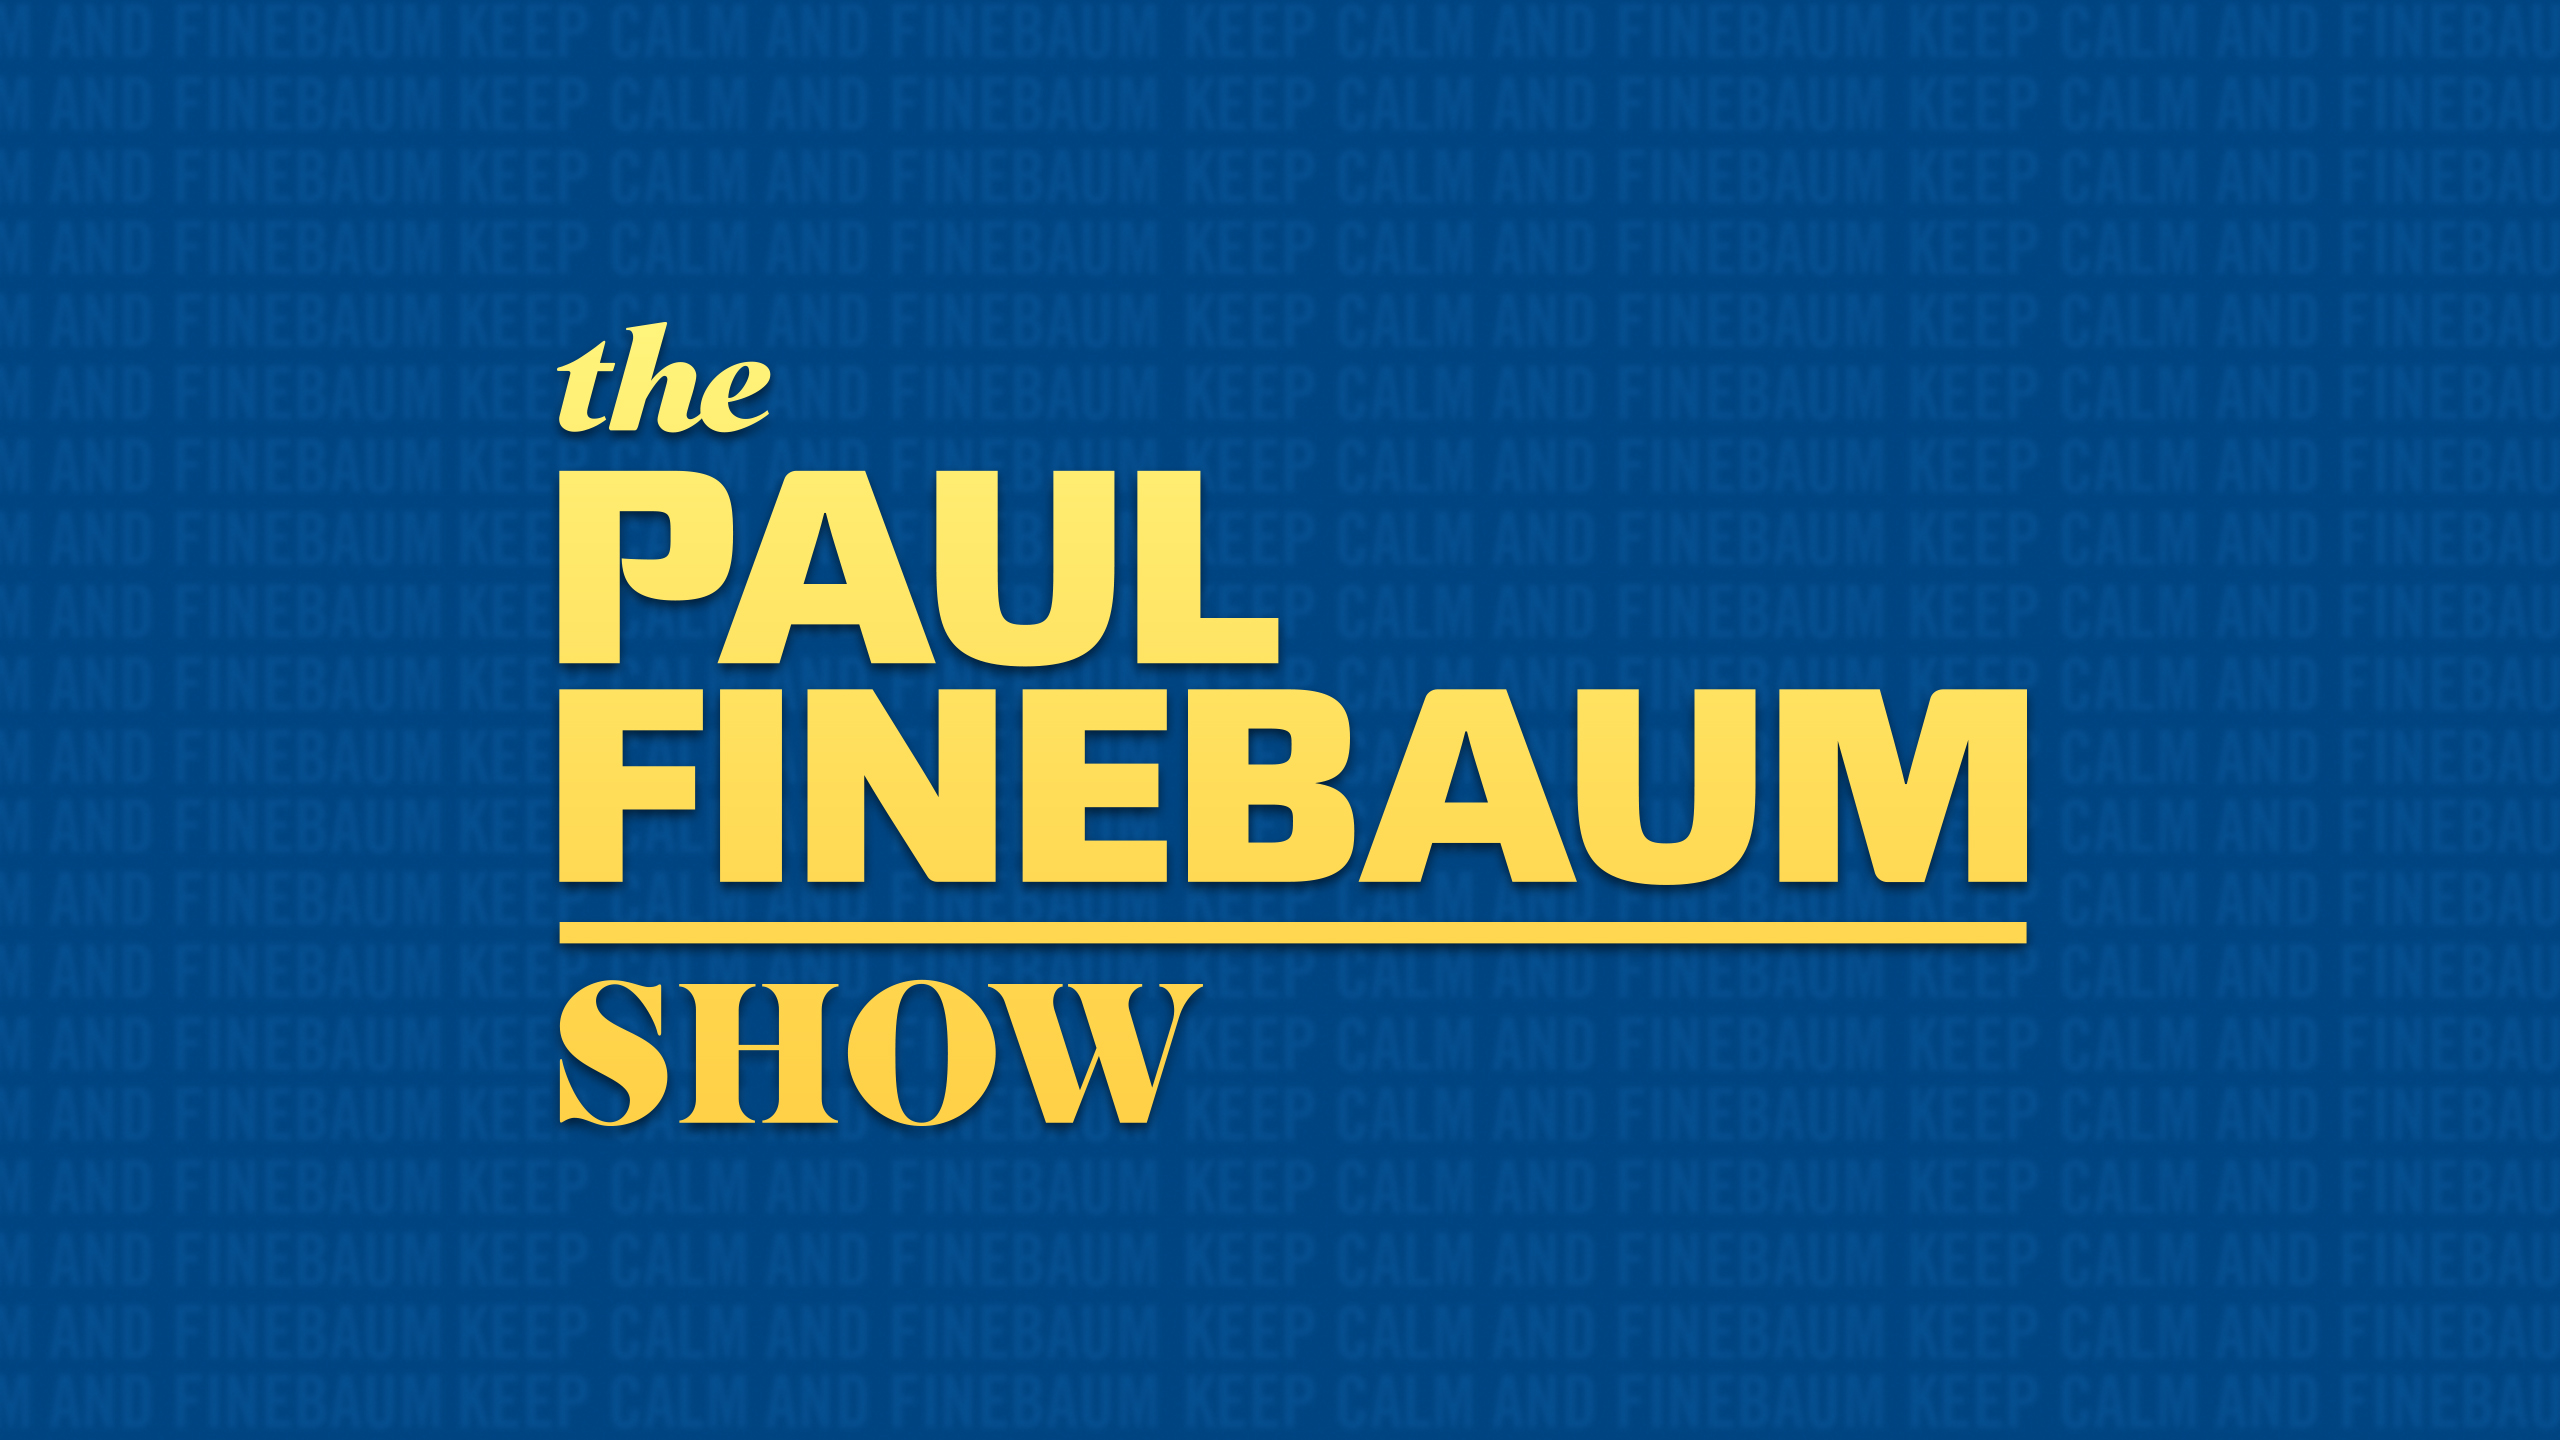 Thu, 3/21 - The Paul Finebaum Show